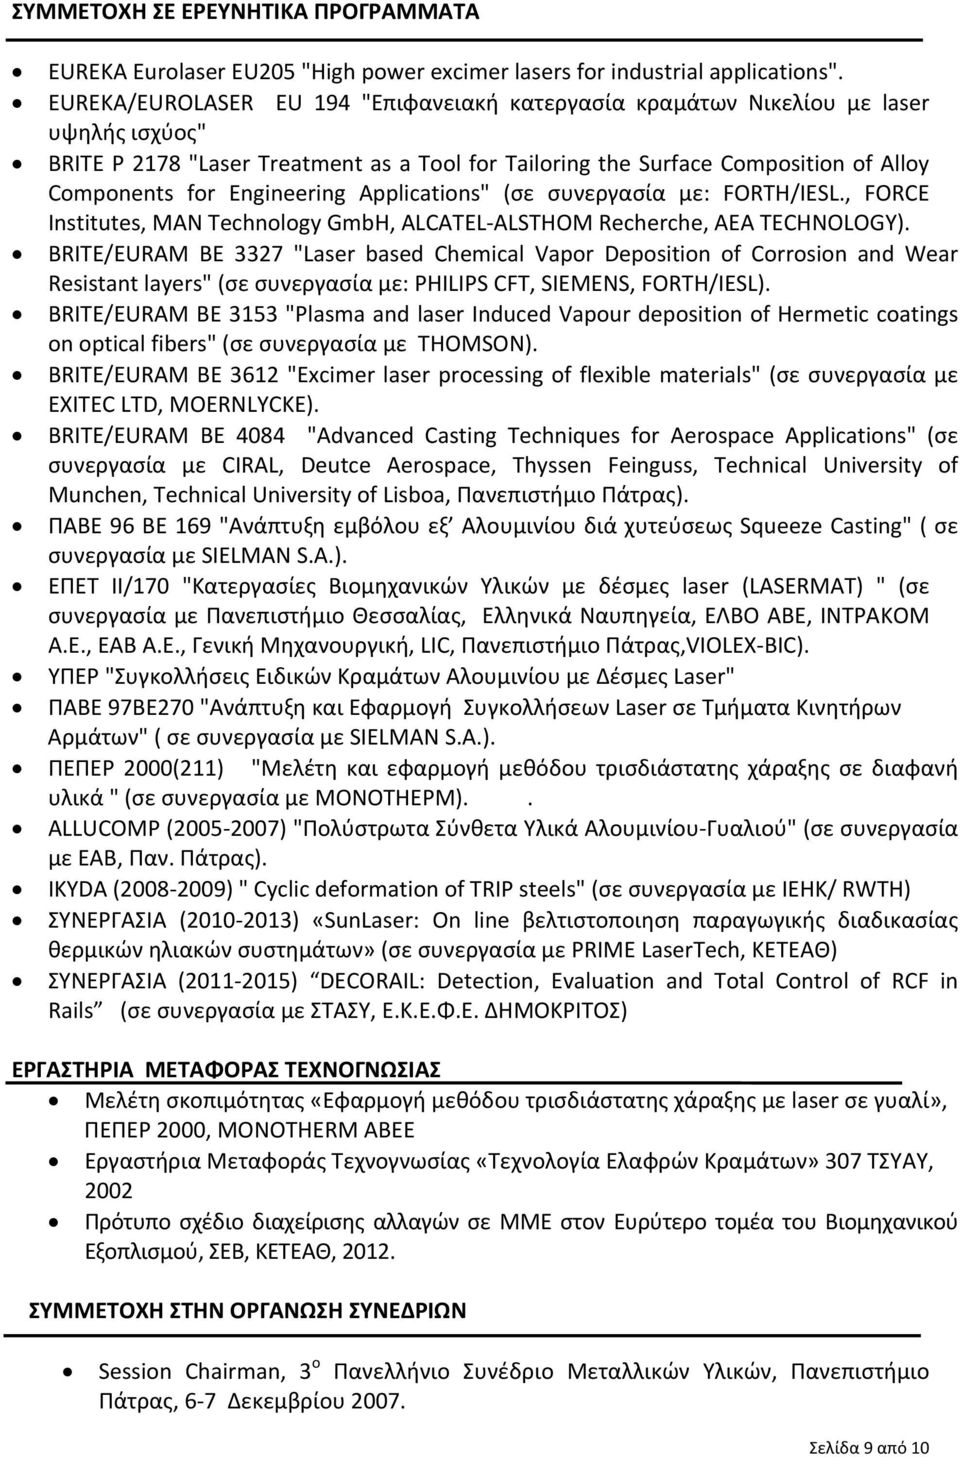 "Engineering Applications"" (σε συνεργασία με: FORTH/IESL., FORCE Institutes, MAN Technology GmbH, ALCATEL ALSTHOM Recherche, AEA TECHNOLOGY)."